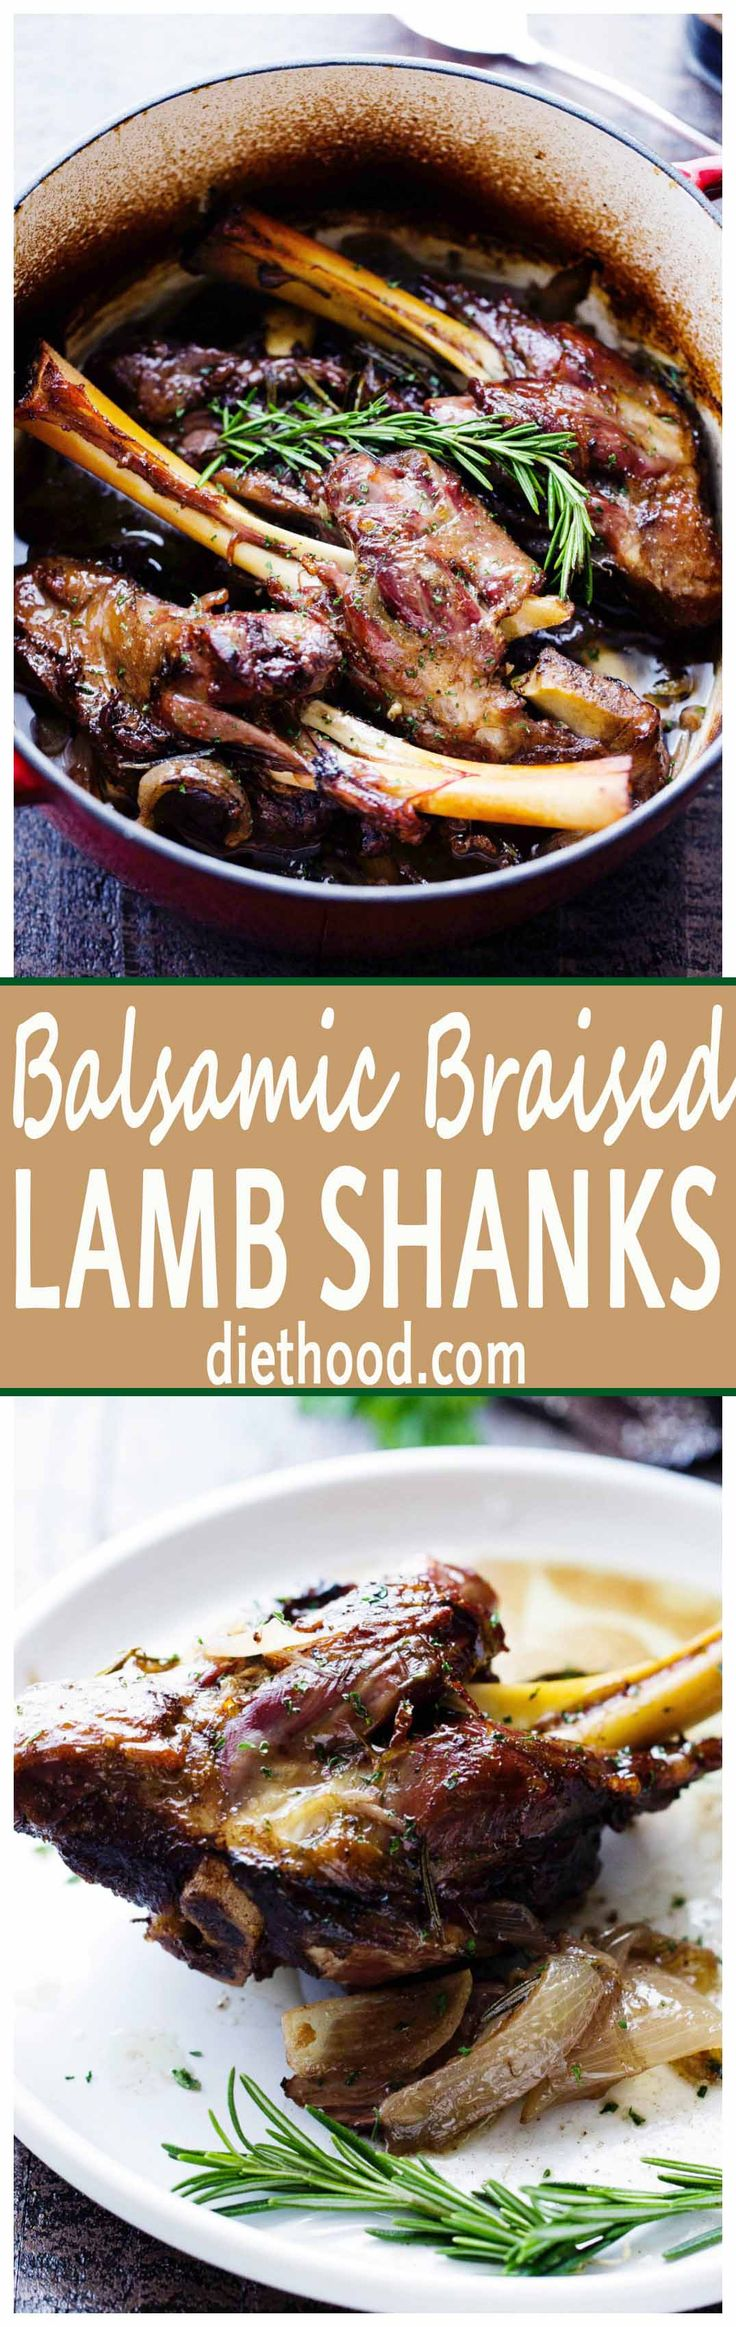 Balsamic Braised Lamb Shanks – A traditional and delicious Easter main dish prepared with lamb shanks slow cooked to a melt in your mouth perfection with balsamic vinegar, wine, garlic and rosemary.